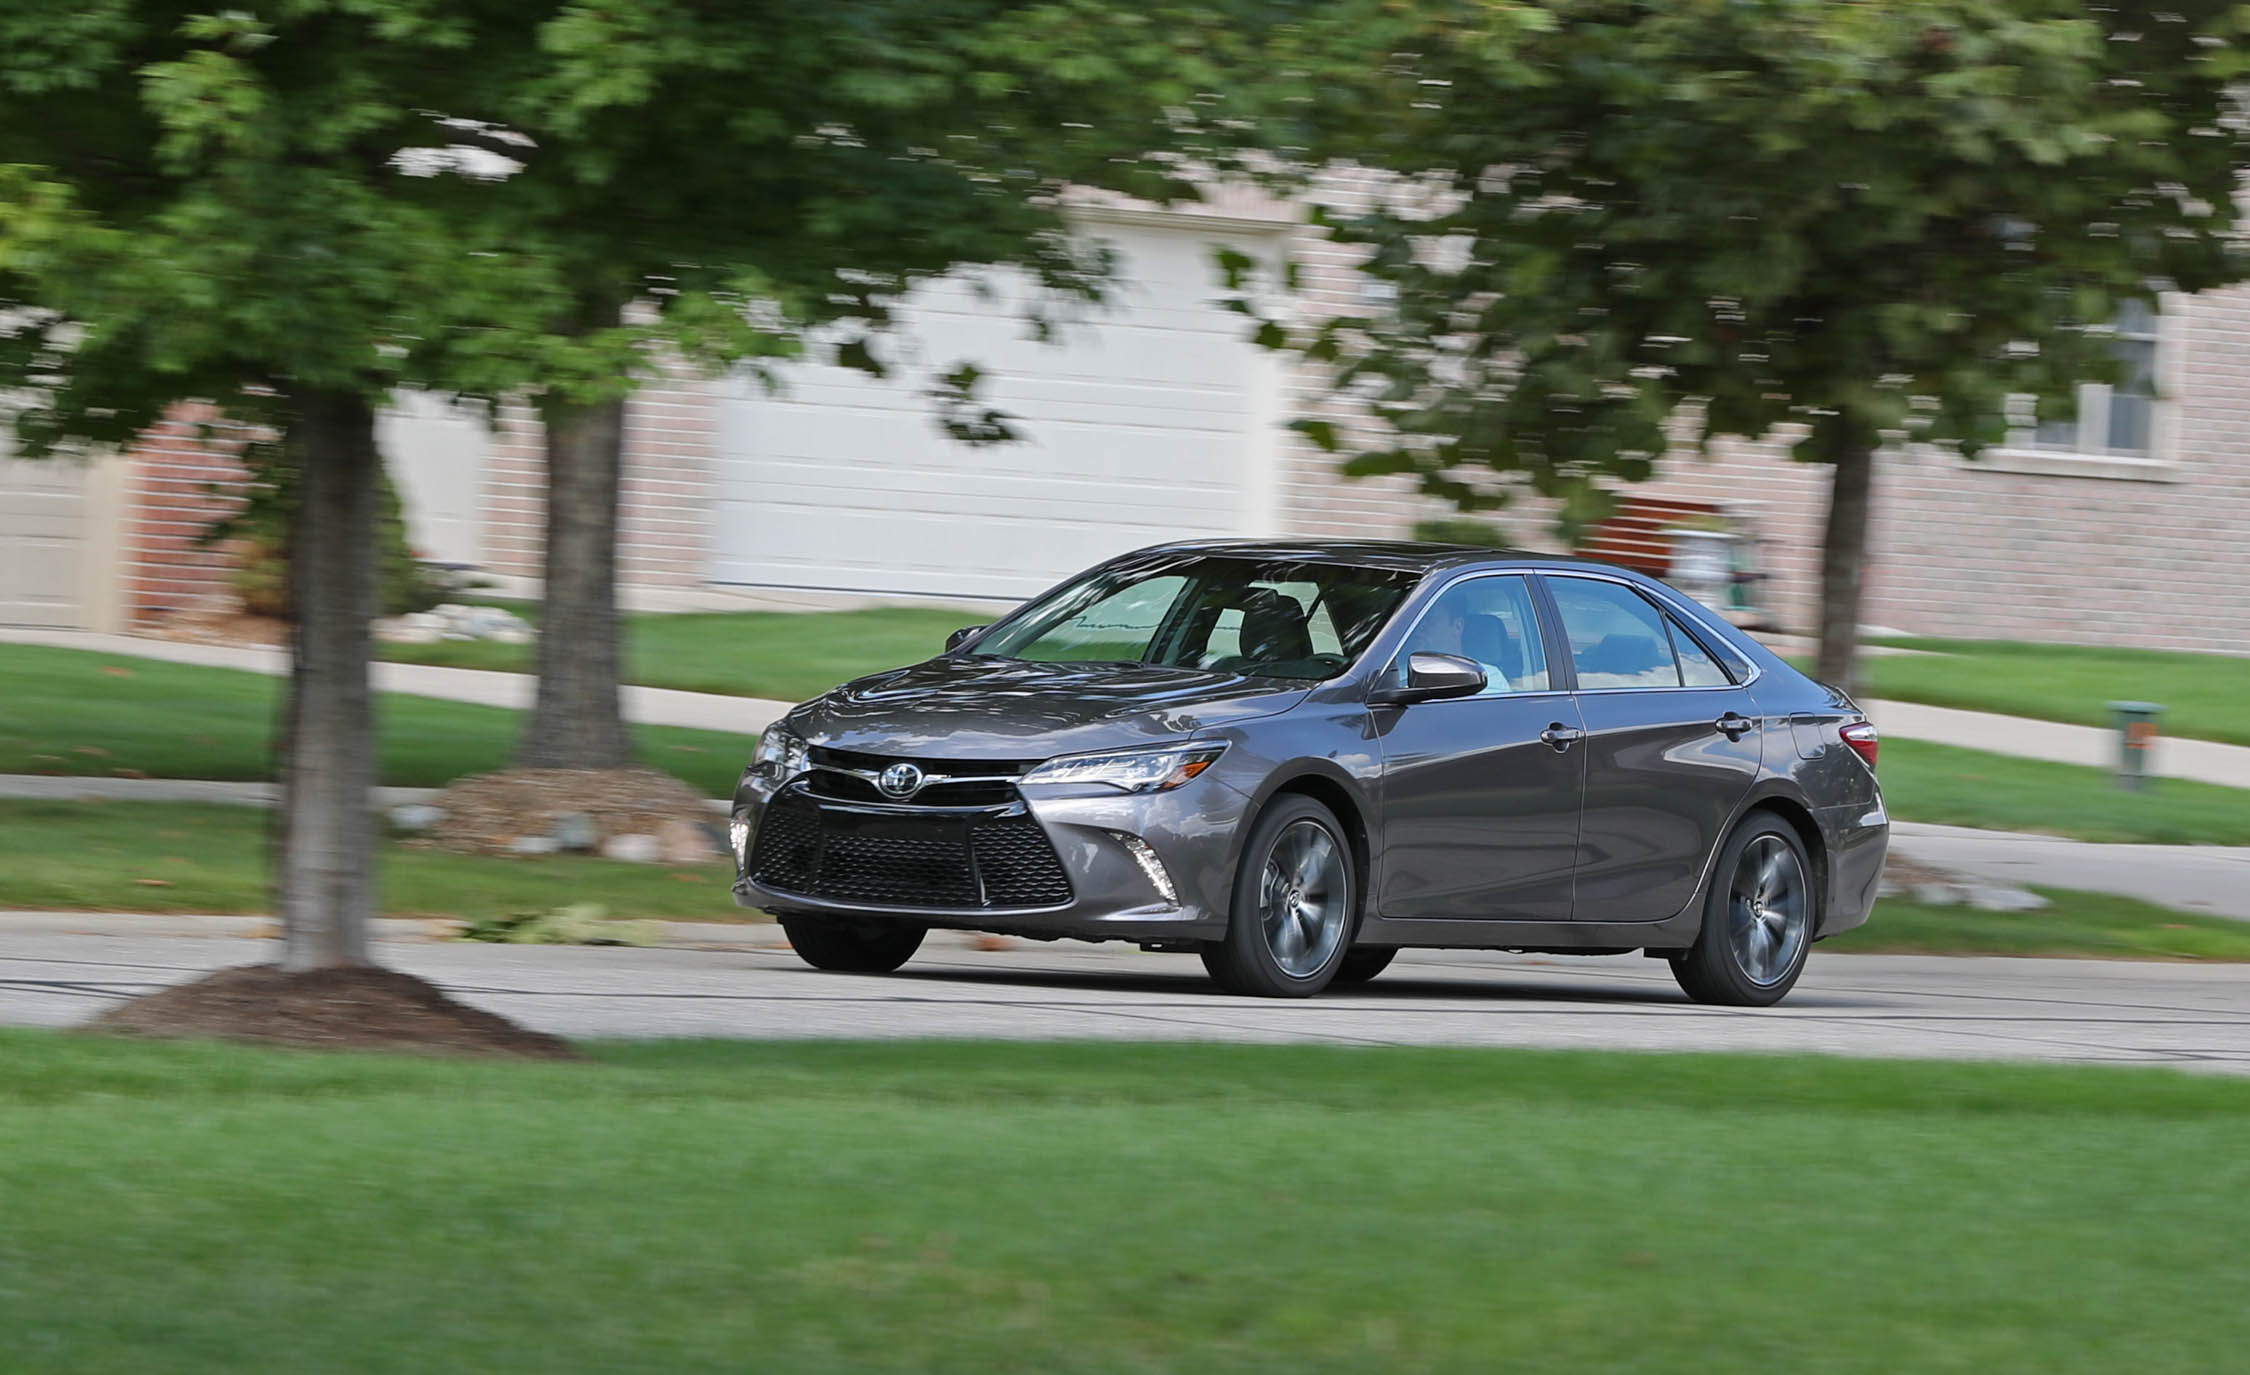 2017 Toyota Camry Test Drive Front And Side View (Photo 27 of 37)